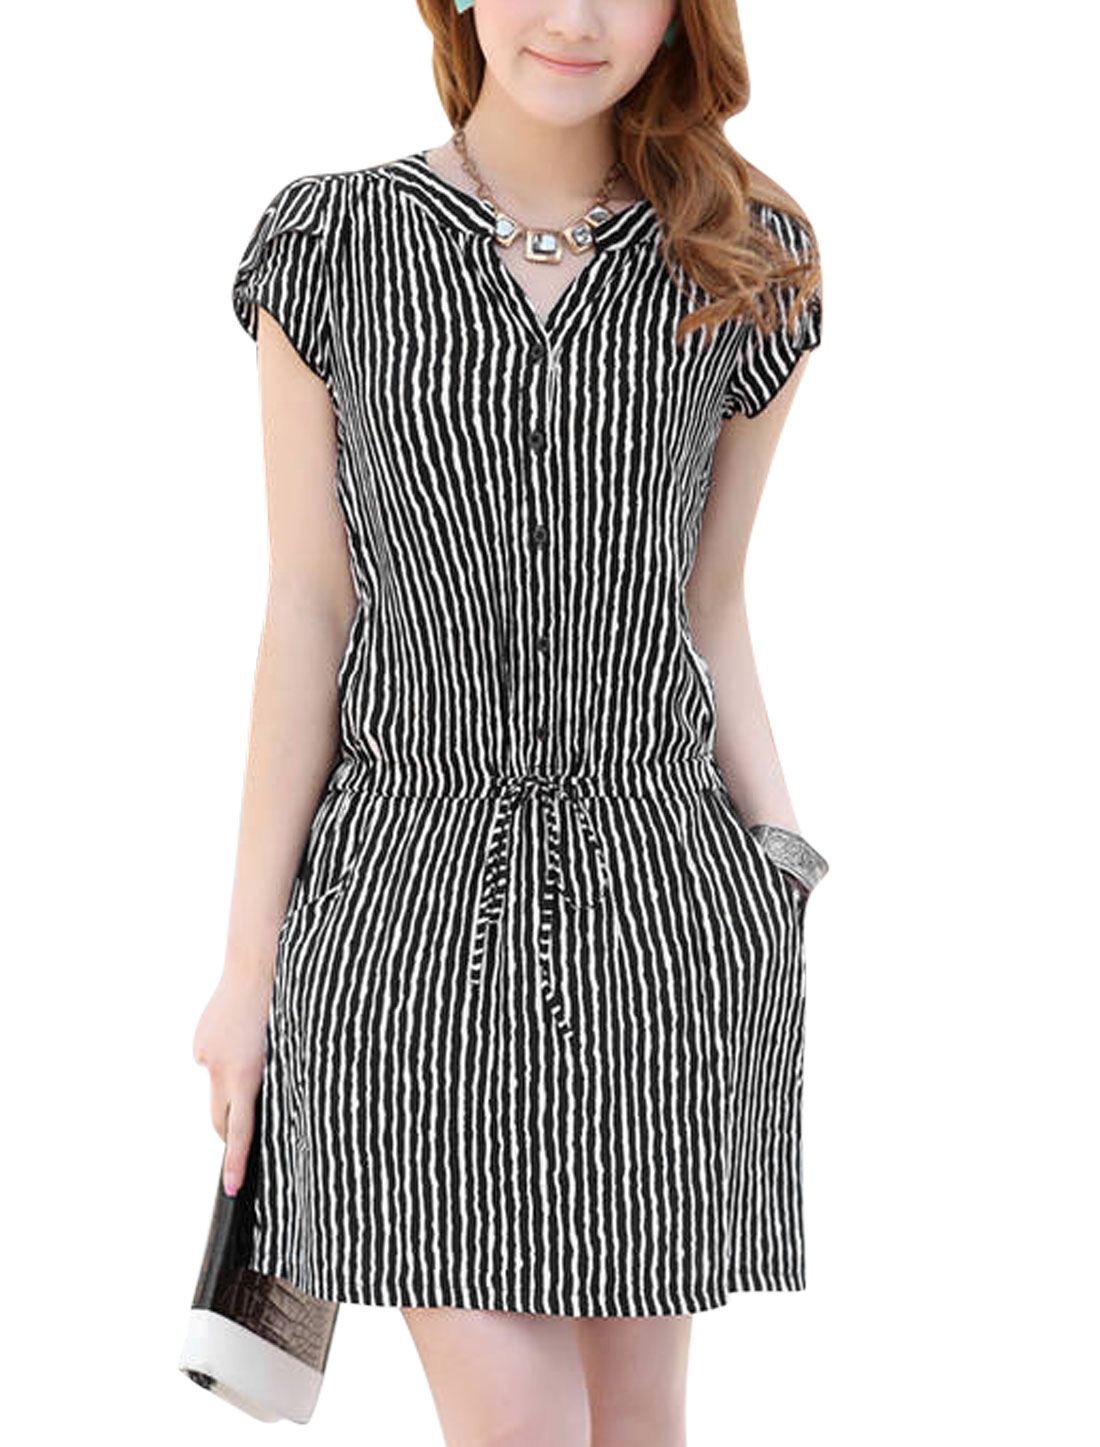 Ladies Short Sleeve Stripes Button Closed Upper Shirt Dress Black XS